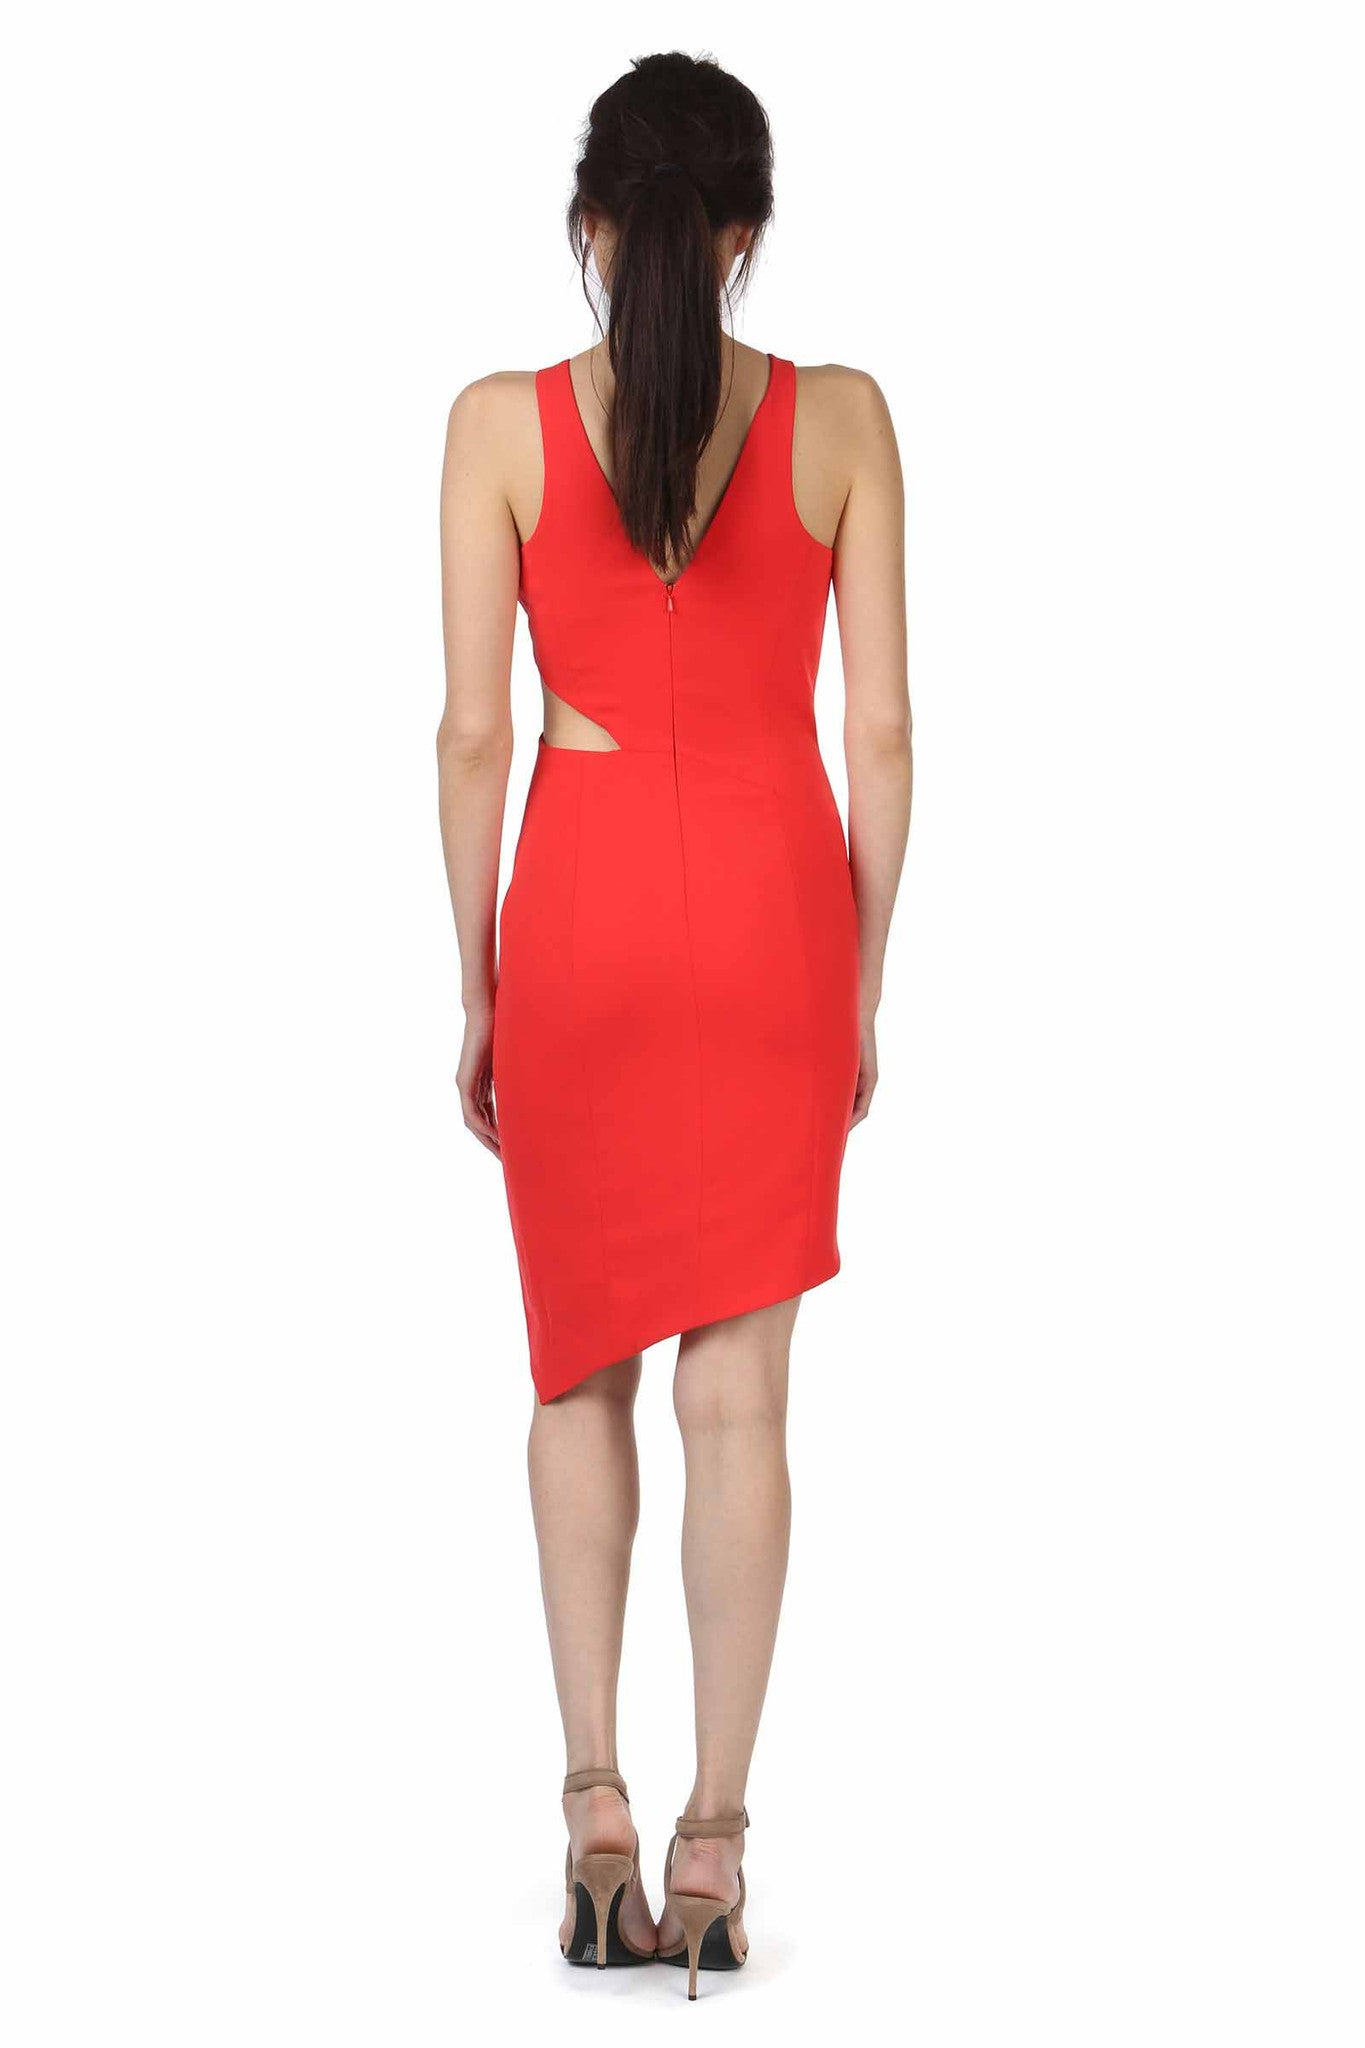 Jay Godfrey Red Cutout High-Neck Dress - Back View